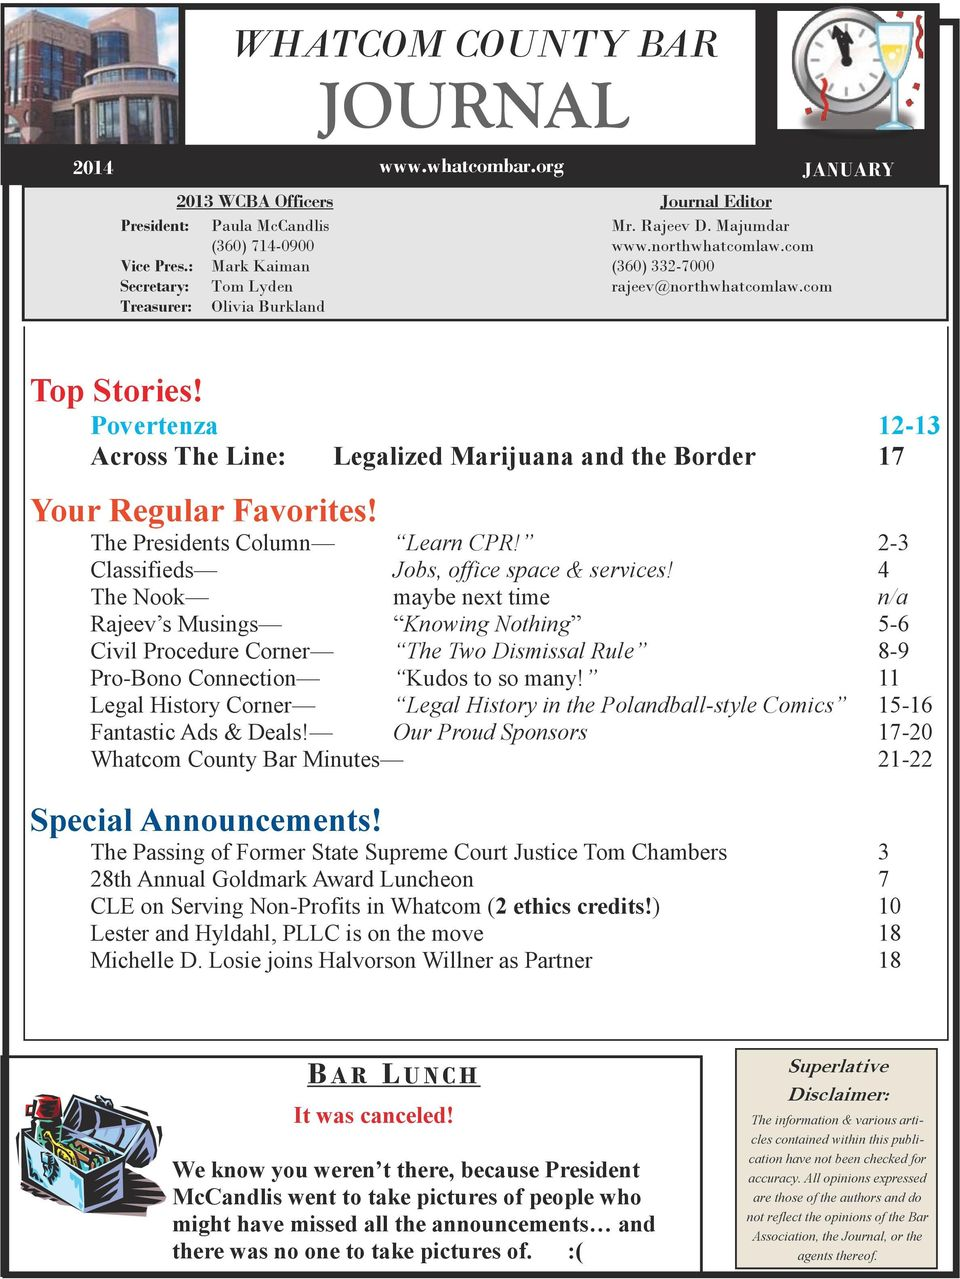 Povertenza 12-13 Across The Line: Legalized Marijuana and the Border 17 Your Regular Favorites! The Presidents Column Learn CPR! 2-3 Classifieds Jobs, office space & services!